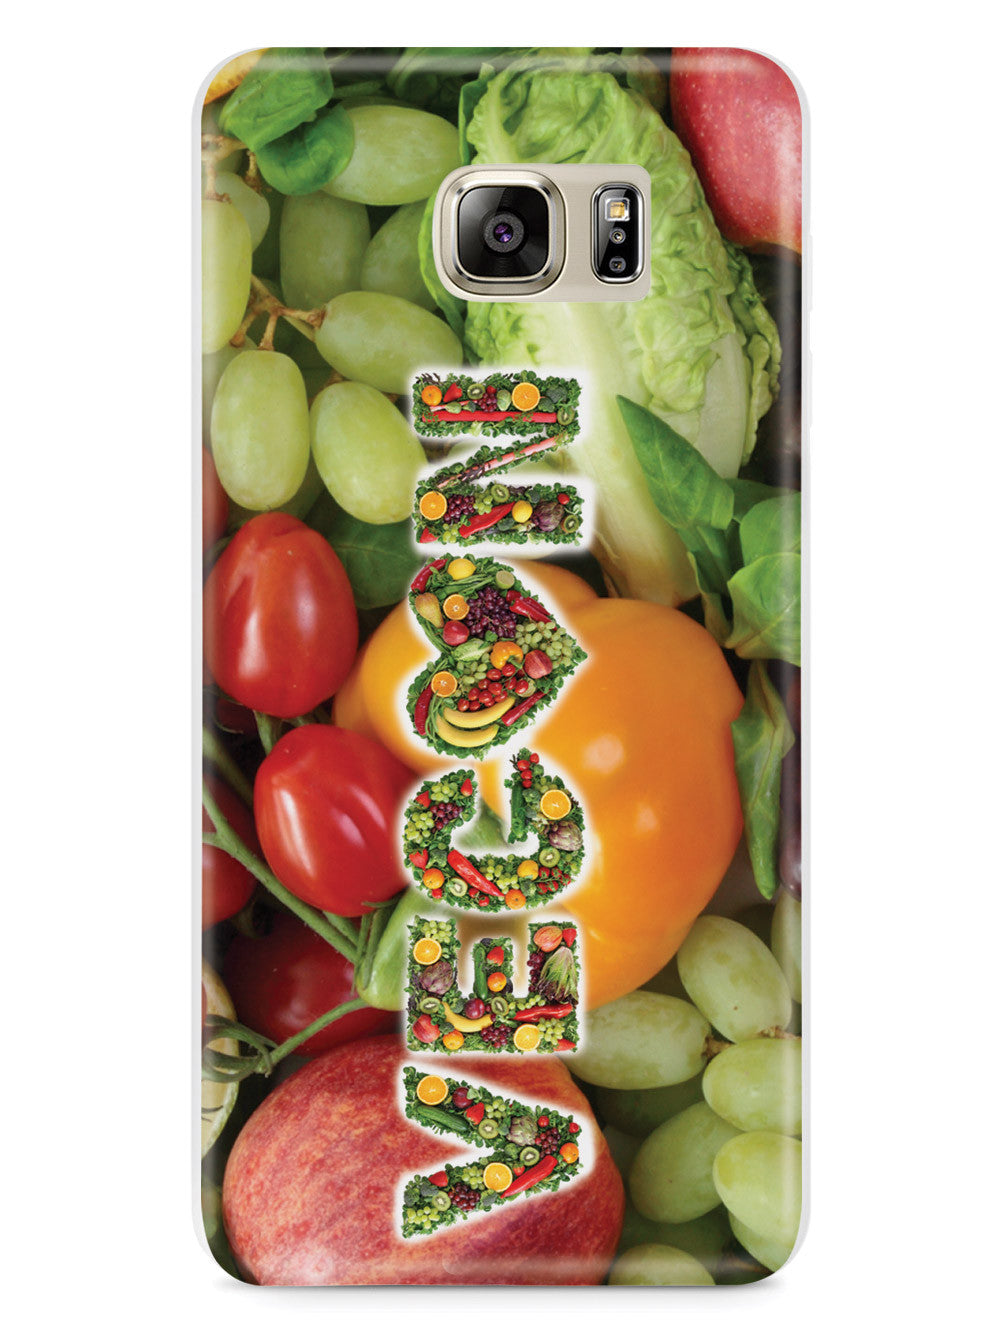 Vegan Love - Healthy Eating, Veggies Case